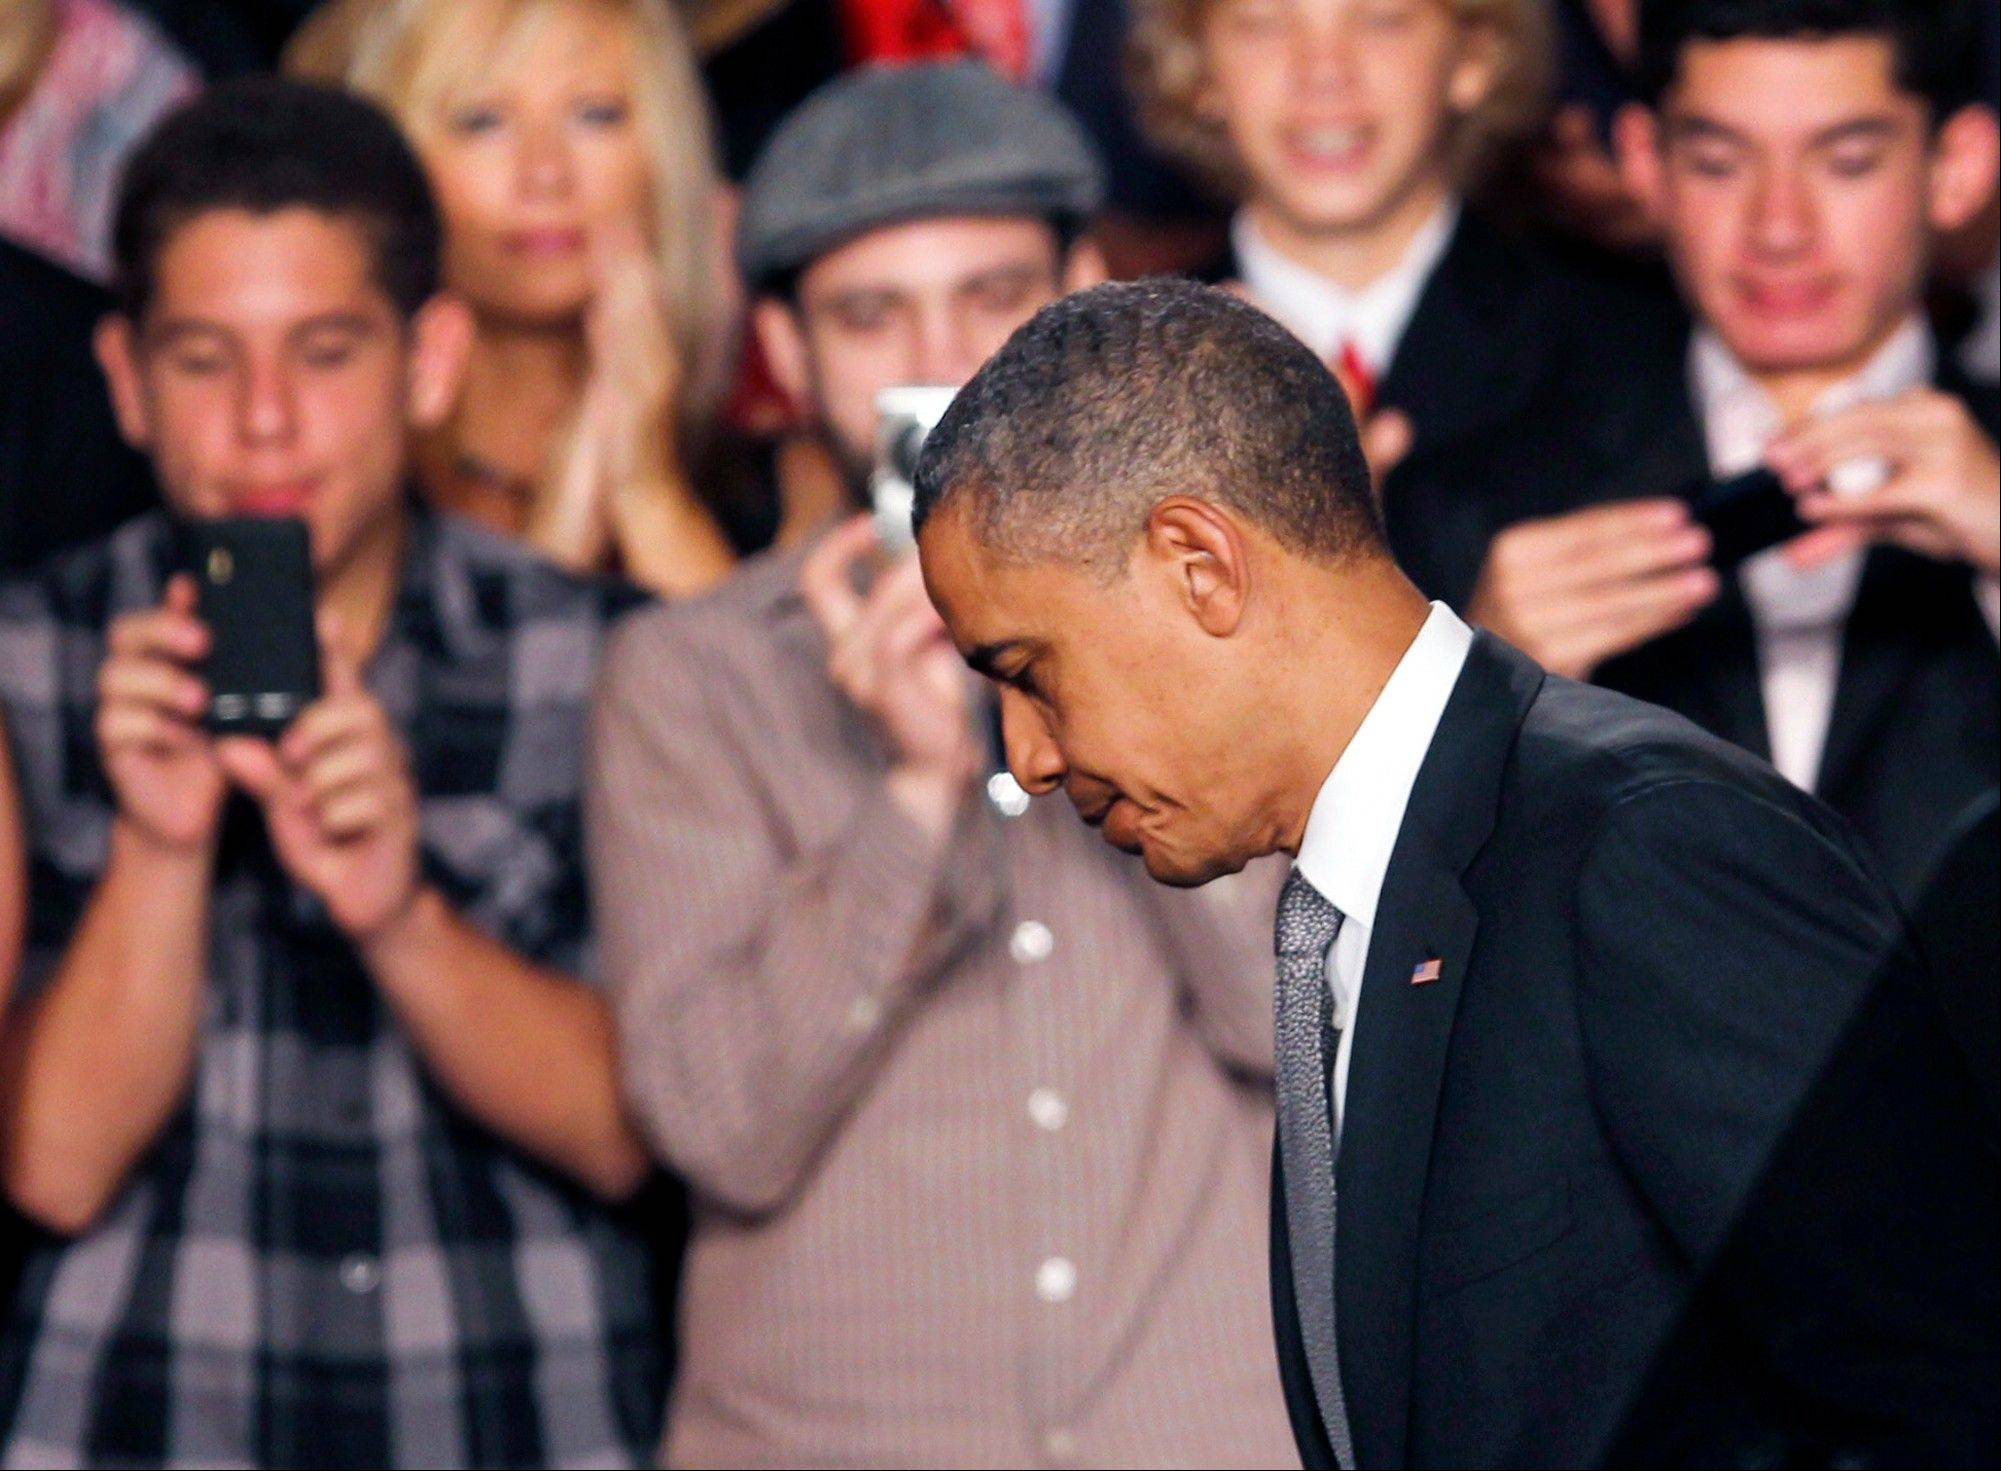 Obama calls for reflection after 'senseless' Colorado massacre